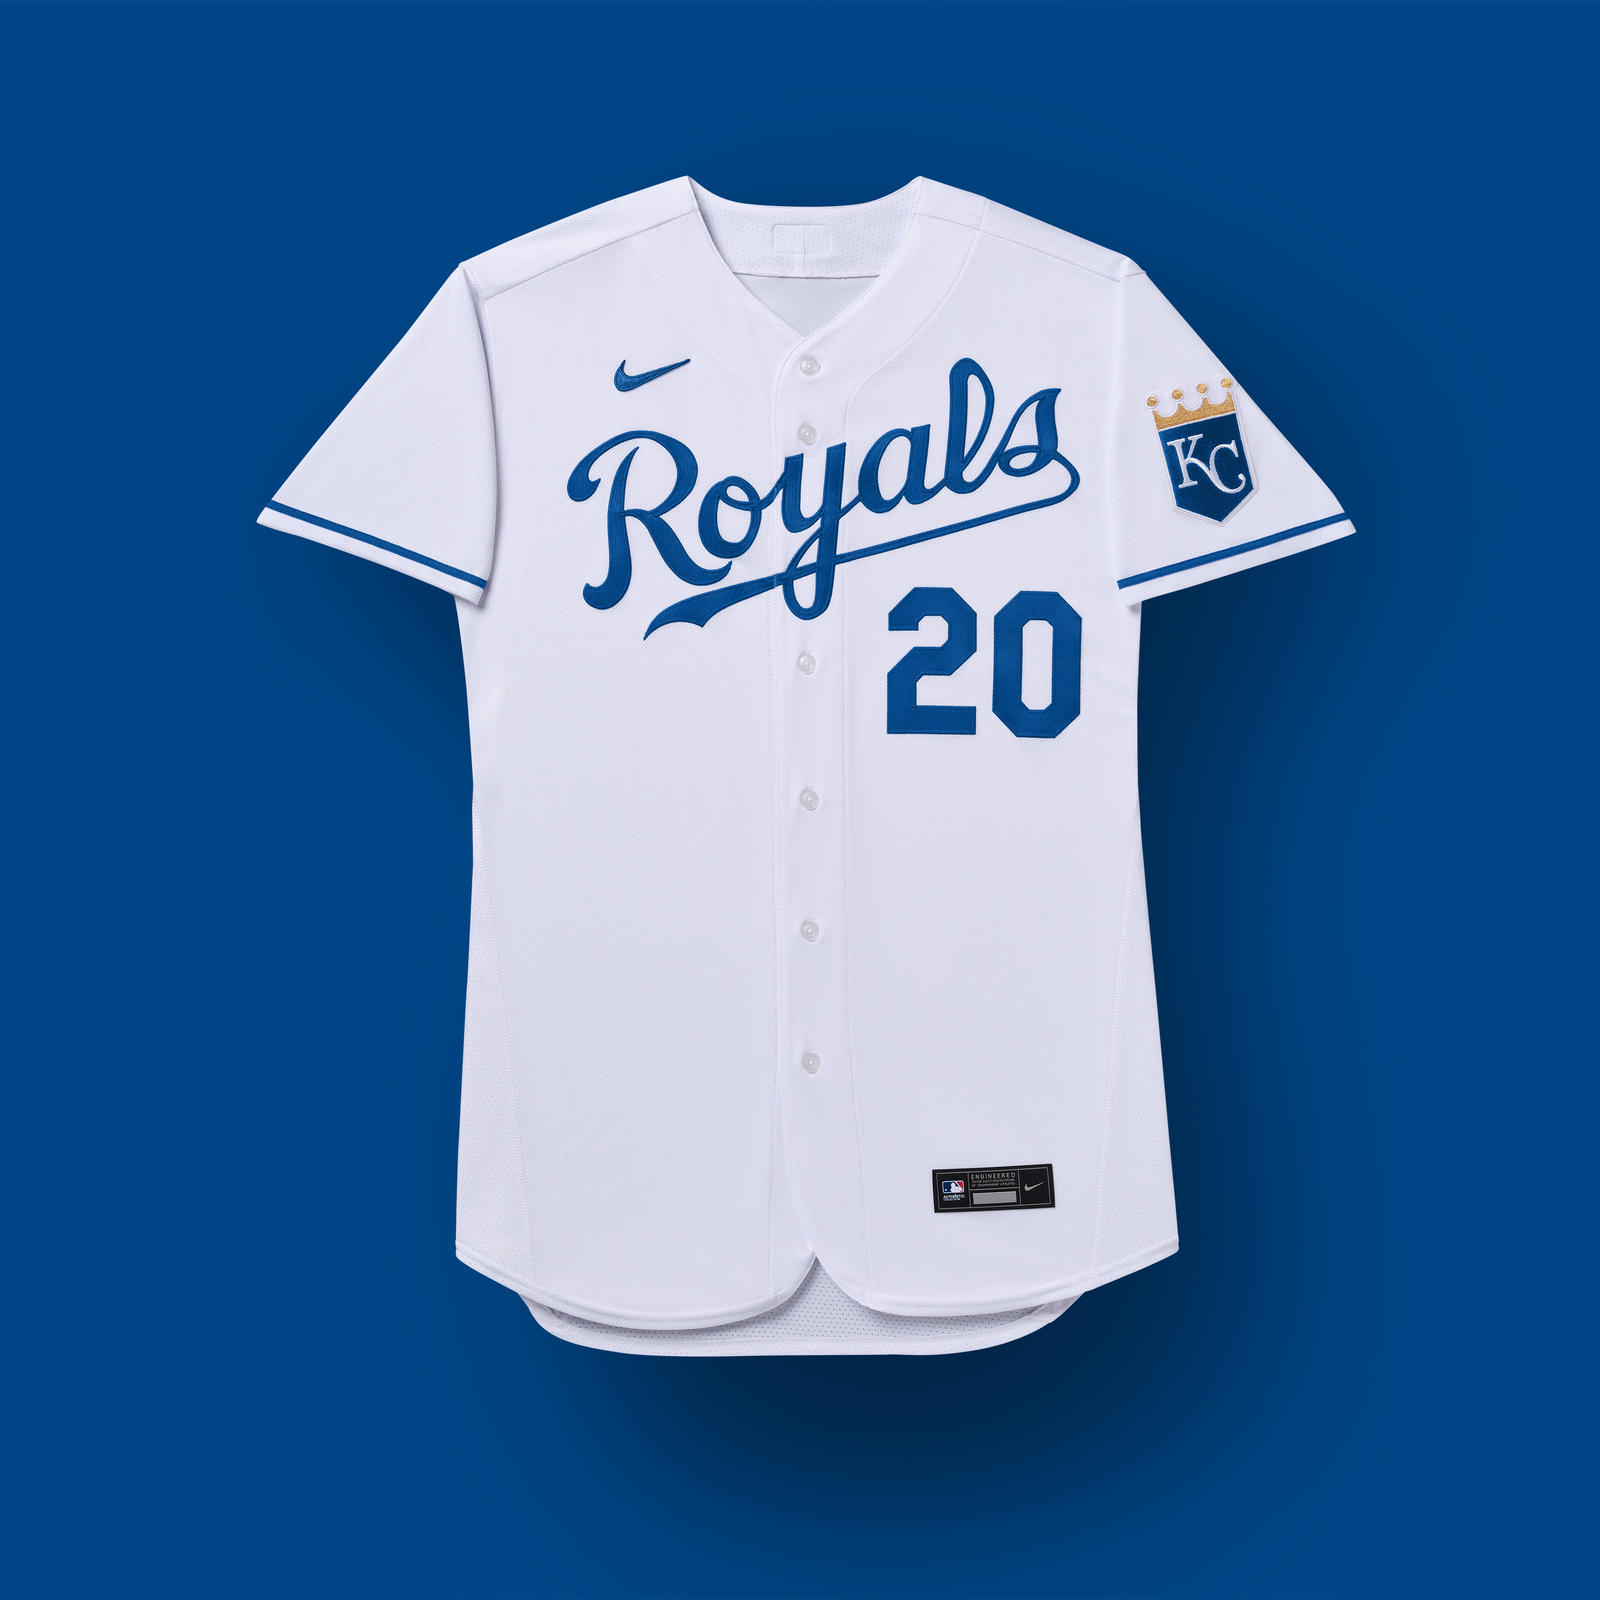 Nike x Major League Baseball Uniforms 2020 Official Images 11